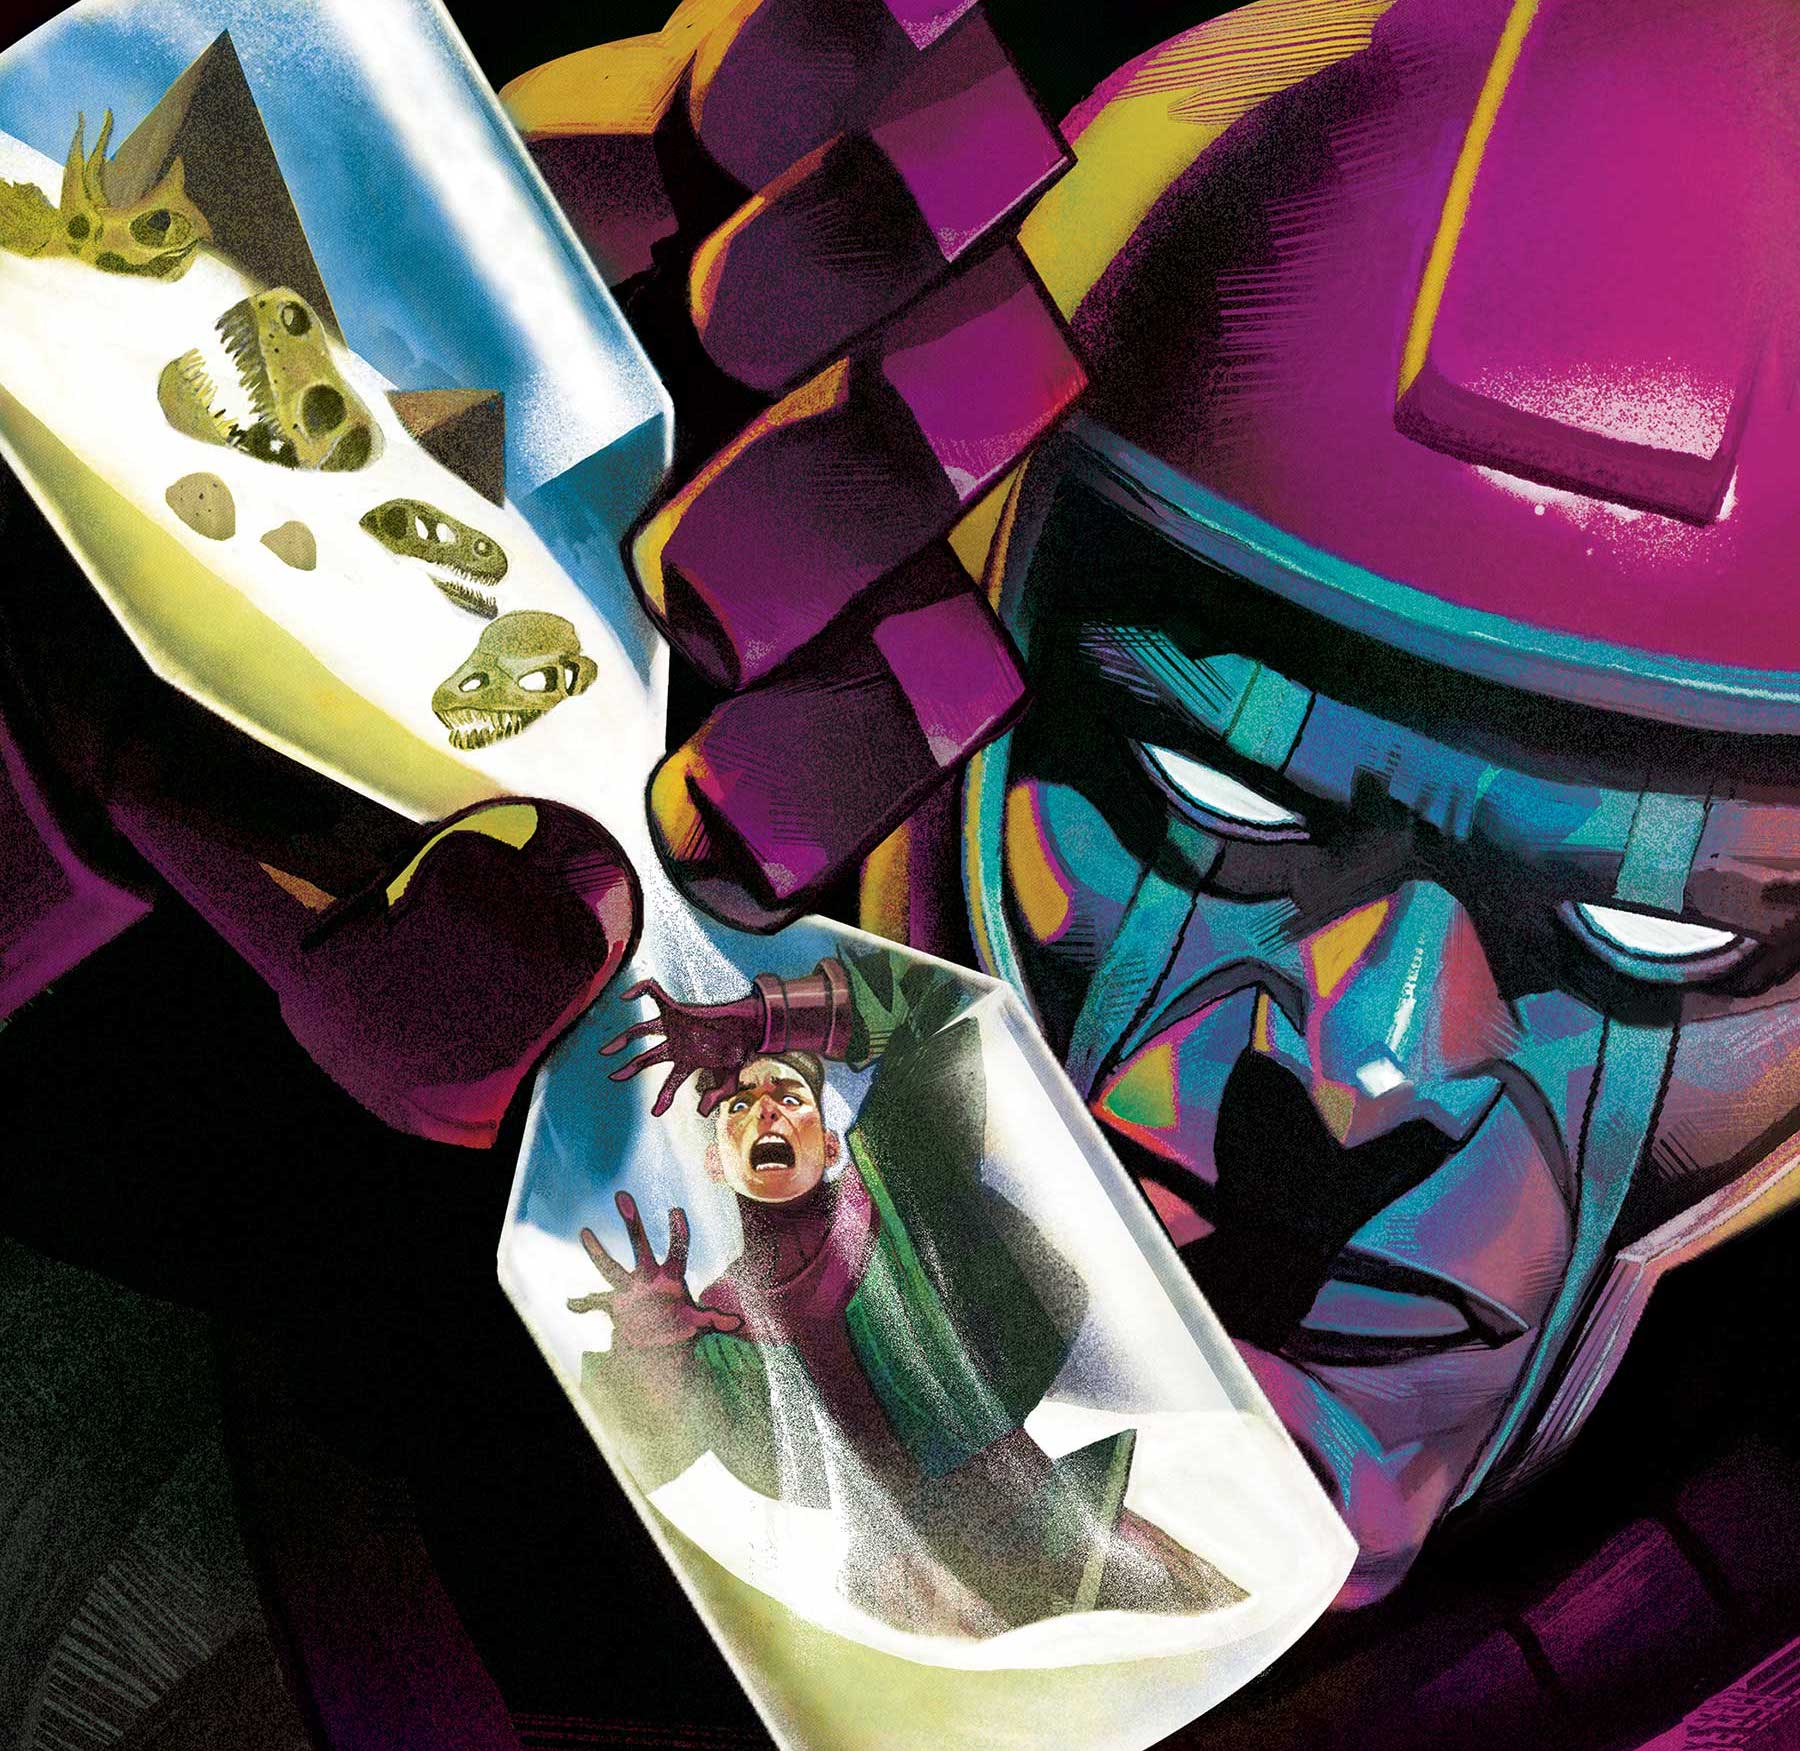 Marvel announces 'Kang the Conqueror' miniseries for August 2021